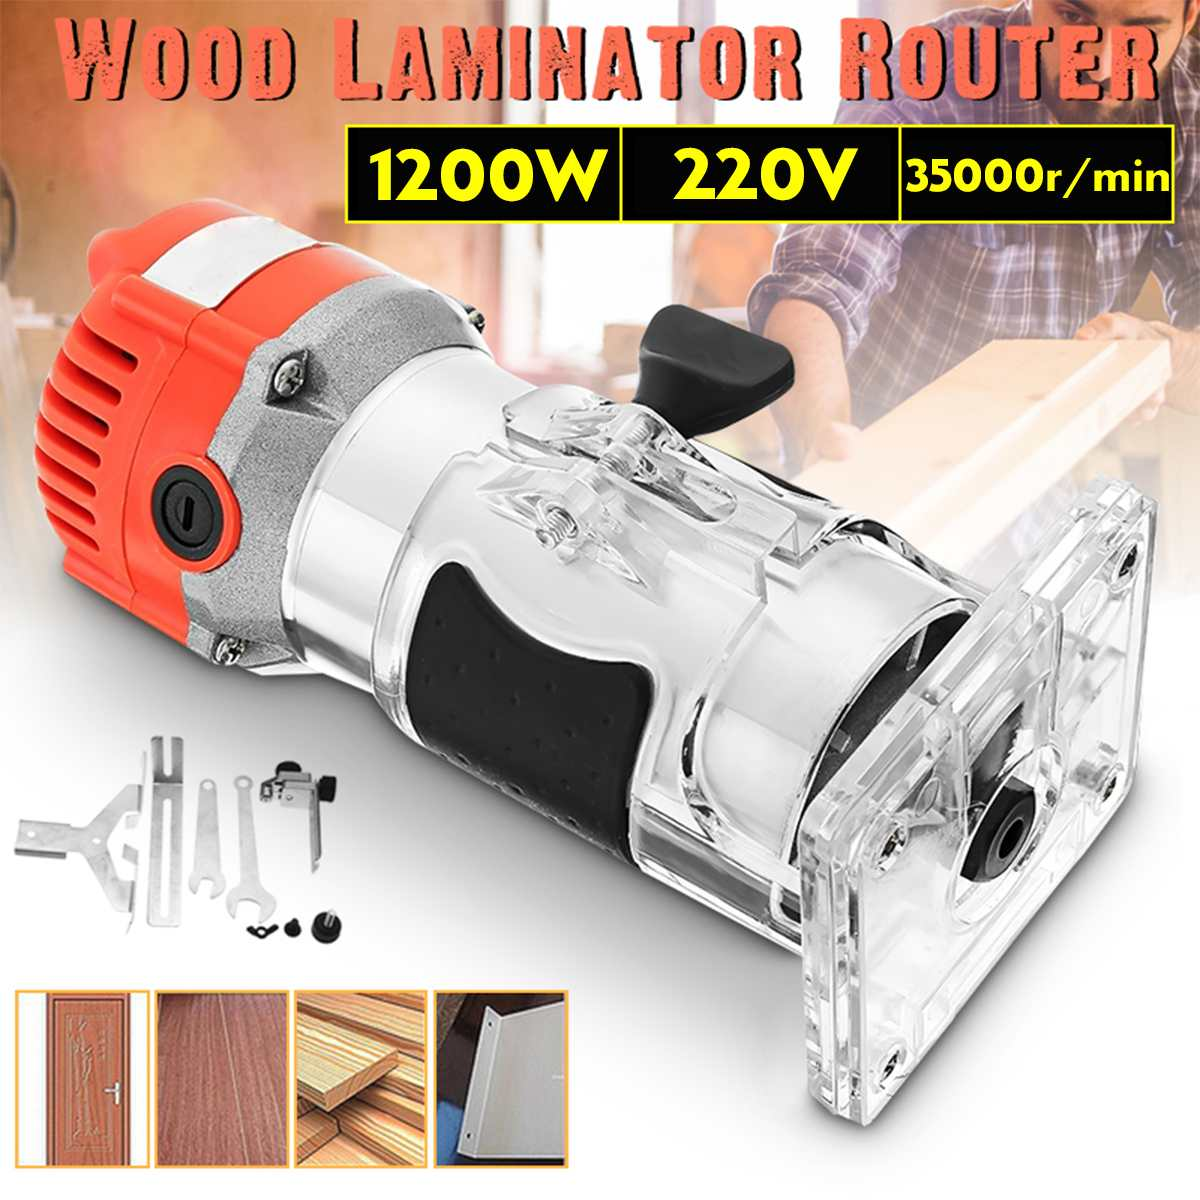 Electric Wood Trimmer Laminator 1200W 220V 35000r/min Router Joiners Tool Set Aluminum+Plastic 6.35mm Collet Diameter Waterproof